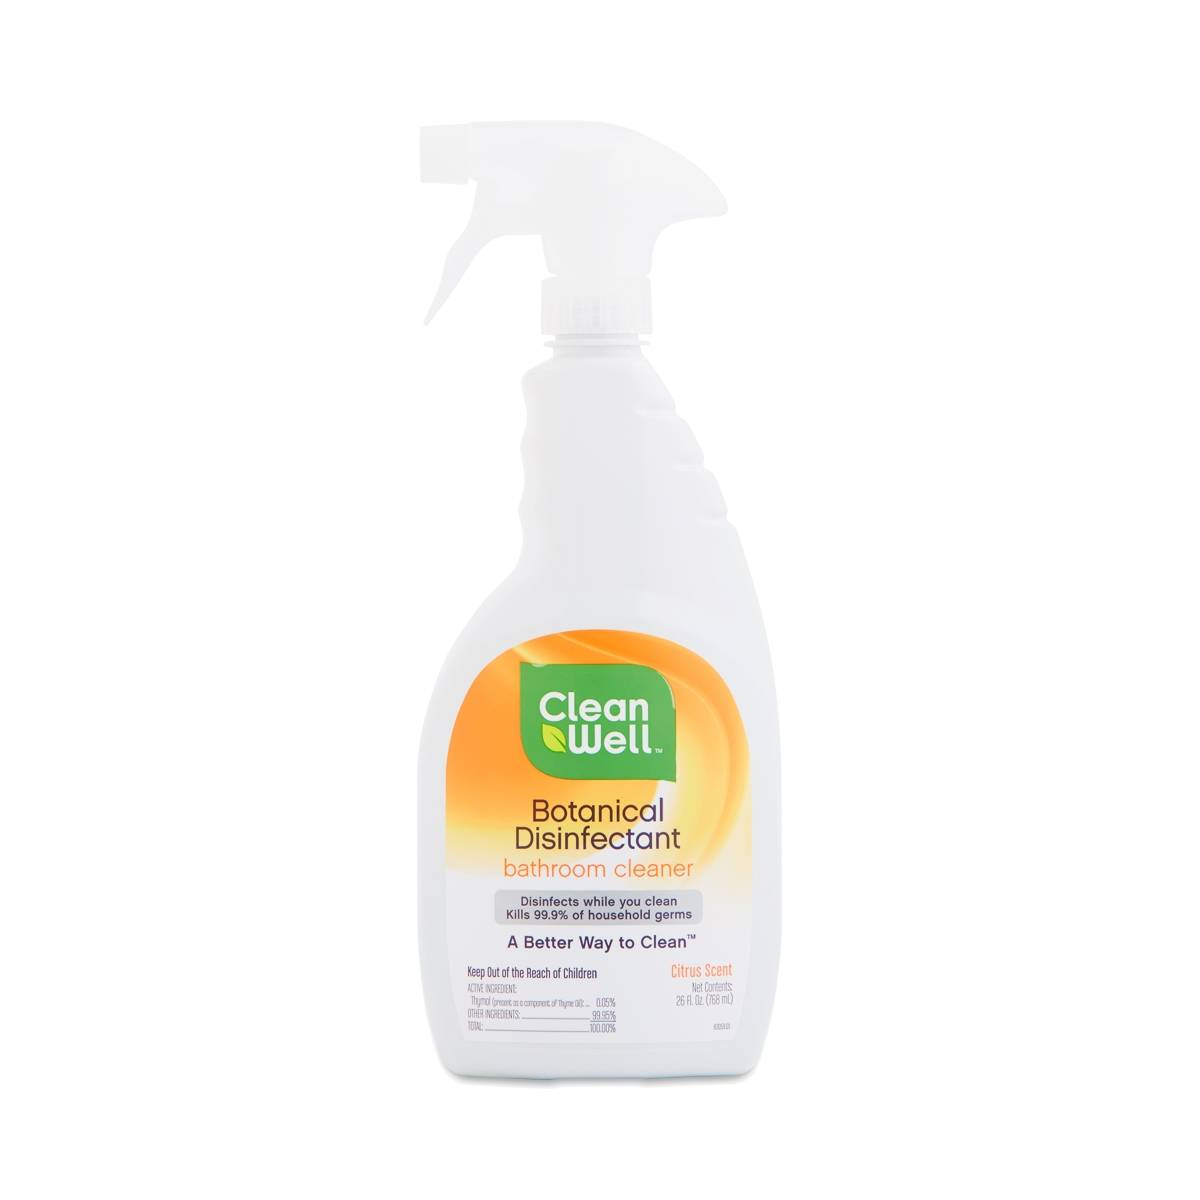 Cleanwell botanical disinfectant bathroom cleaner citrus scent thrive market for Cleanwell botanical disinfectant bathroom cleaner